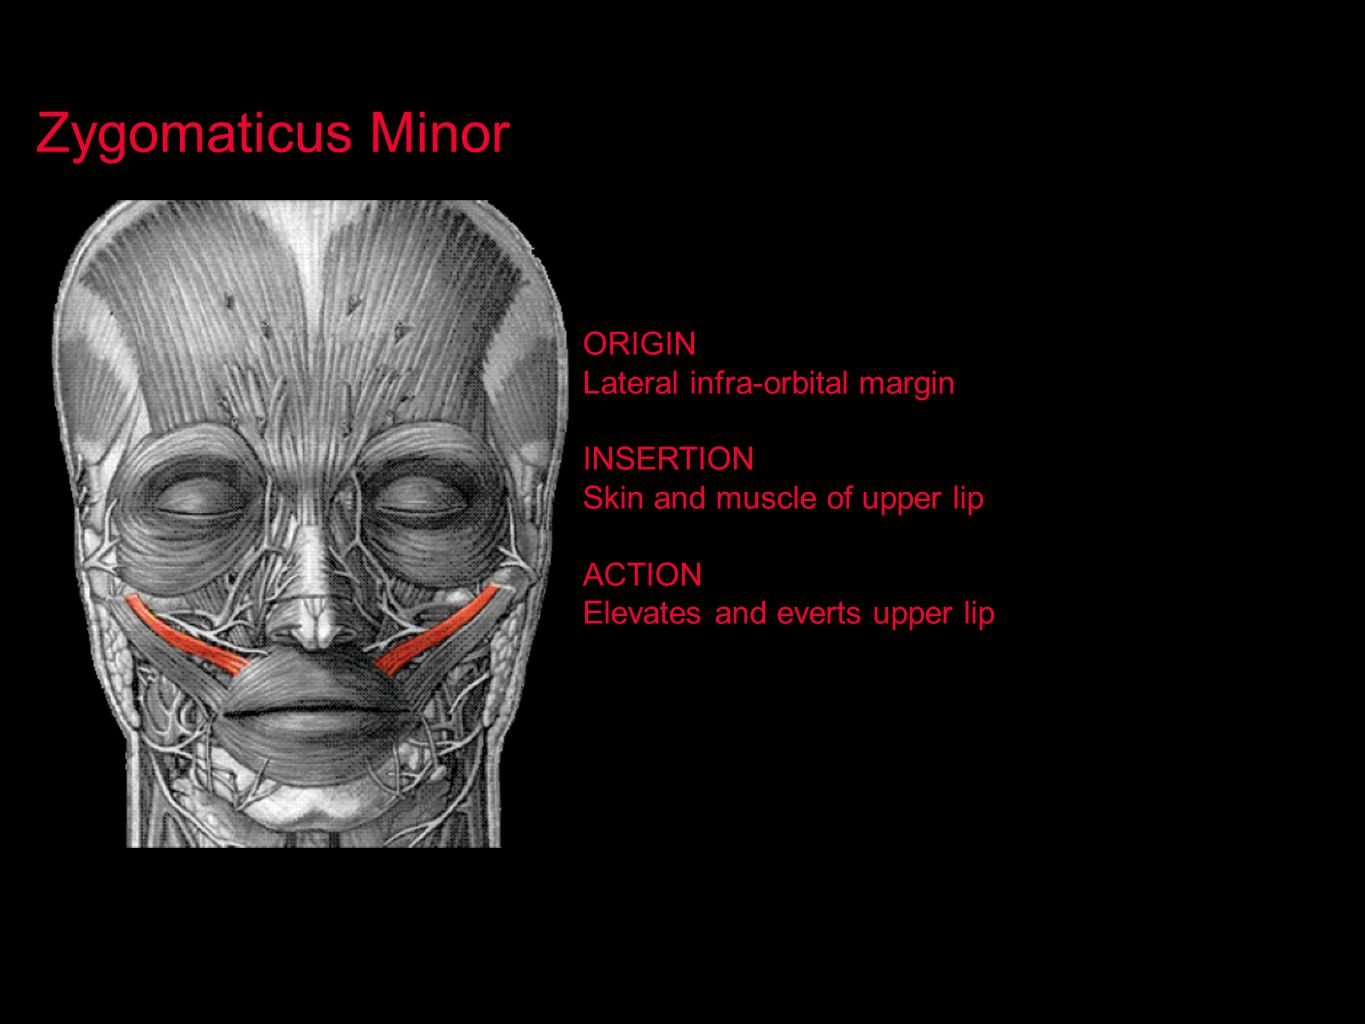 The zygomaticus major muscle is a muscle that controls facial expression drawing the mouths angle upward and outward The zygomaticus major muscle starts at the cheekbone and extends to the